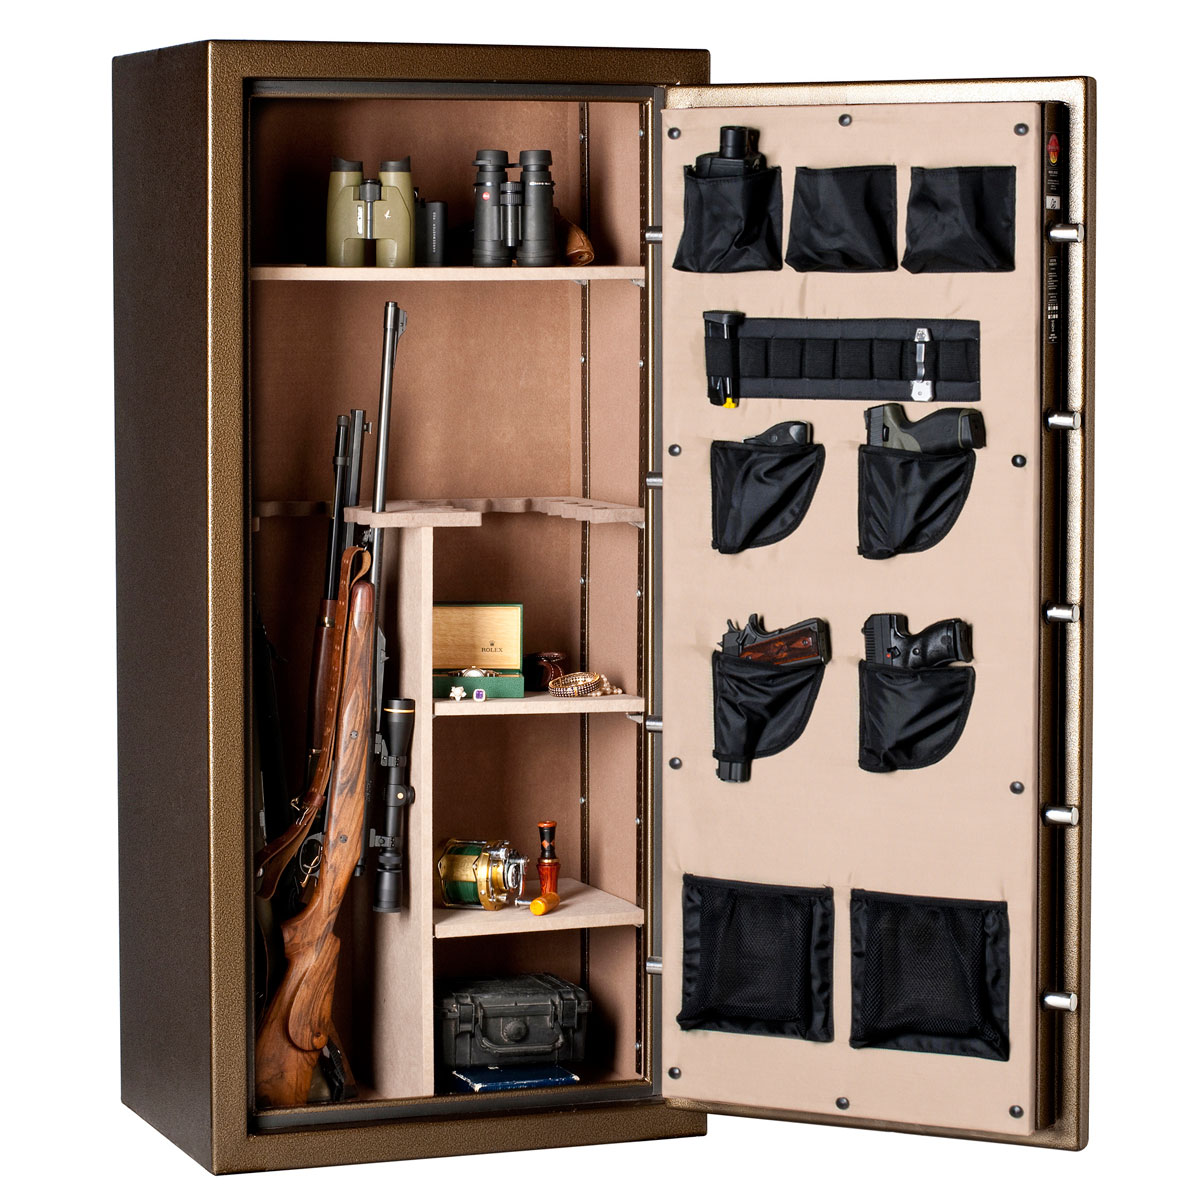 Bighorn 5928ECC-SPL Classic Gun Safe: 24 Gun/ 30 Minute Fire w/ Door Organization - GS5928ECC-SPLEL